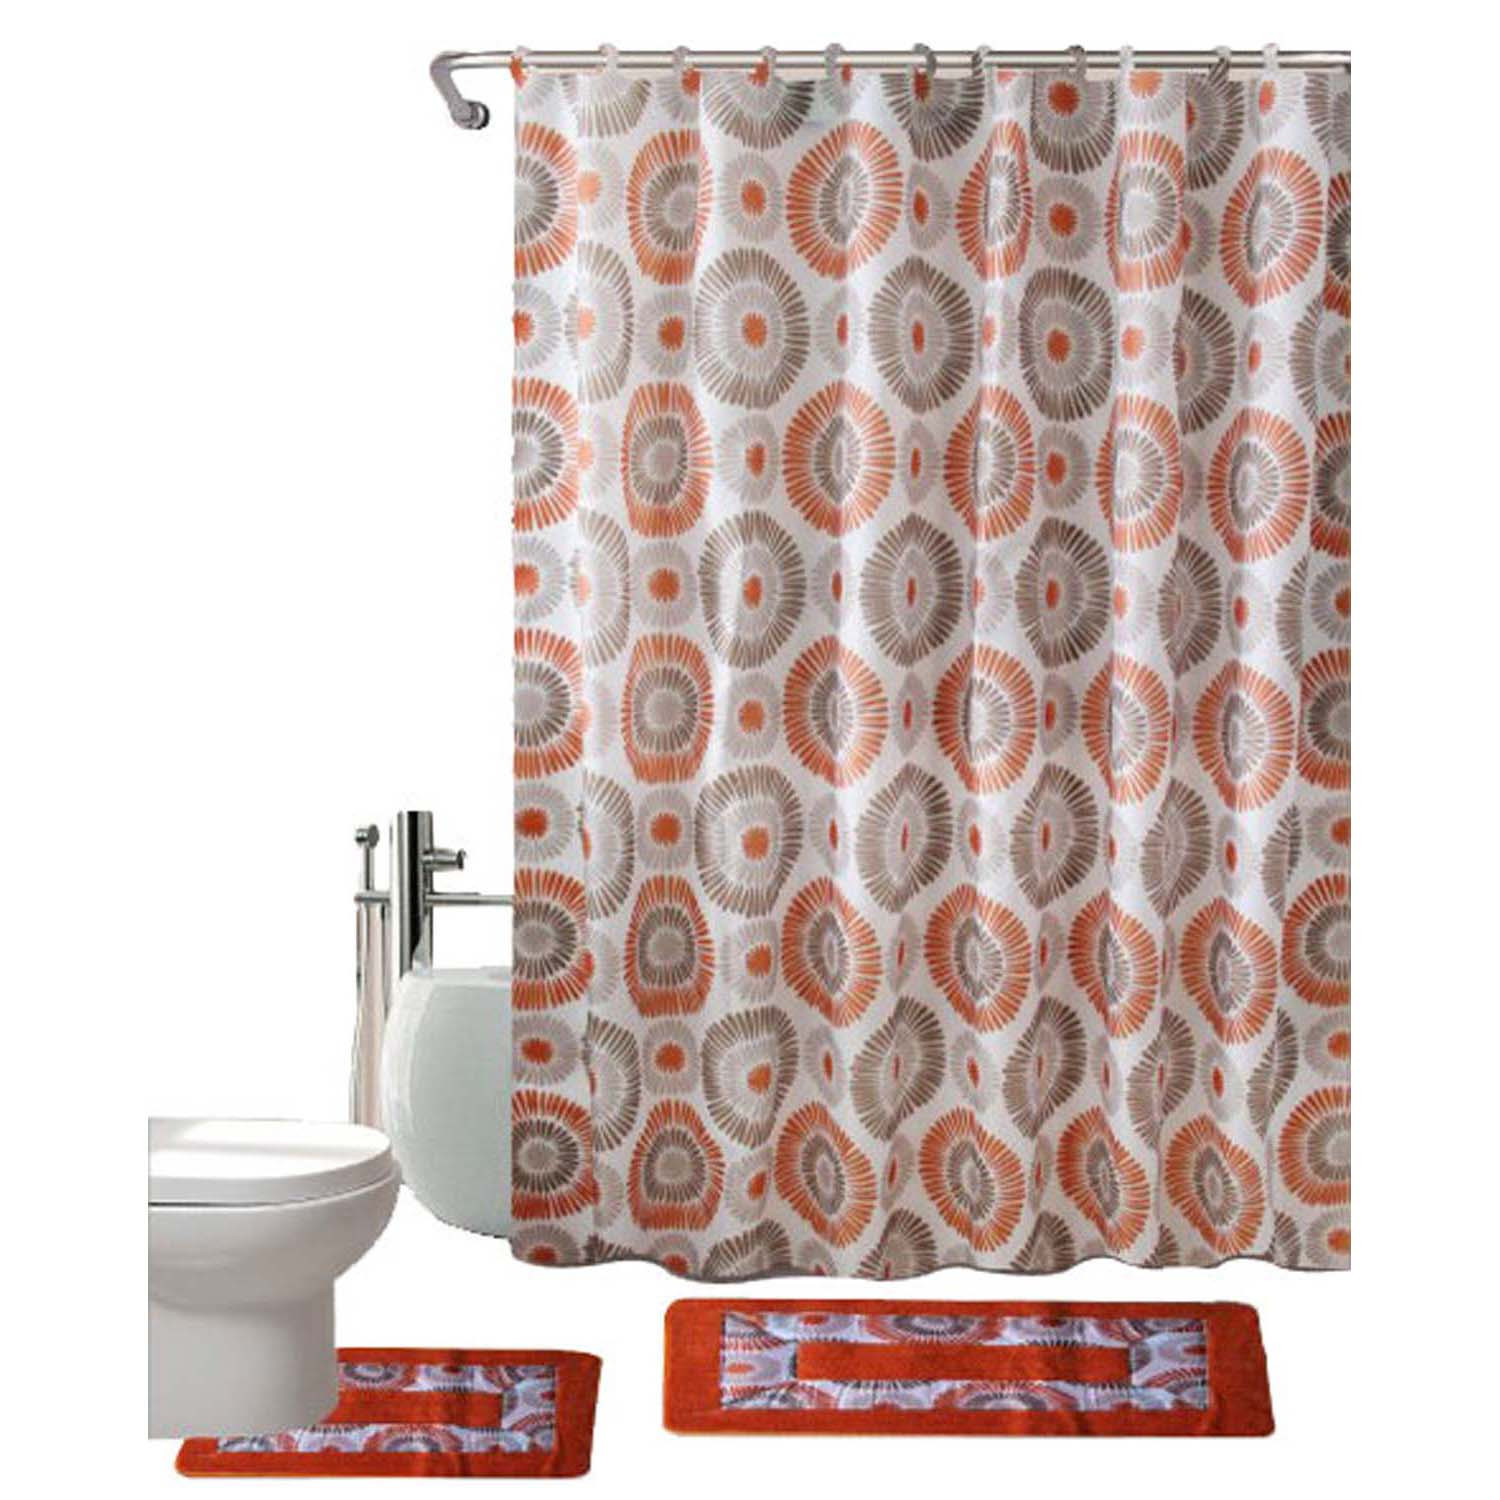 Bath Mat Skylar Orange 15-Piece Printed Bathroom Set Shower Curtain hooks